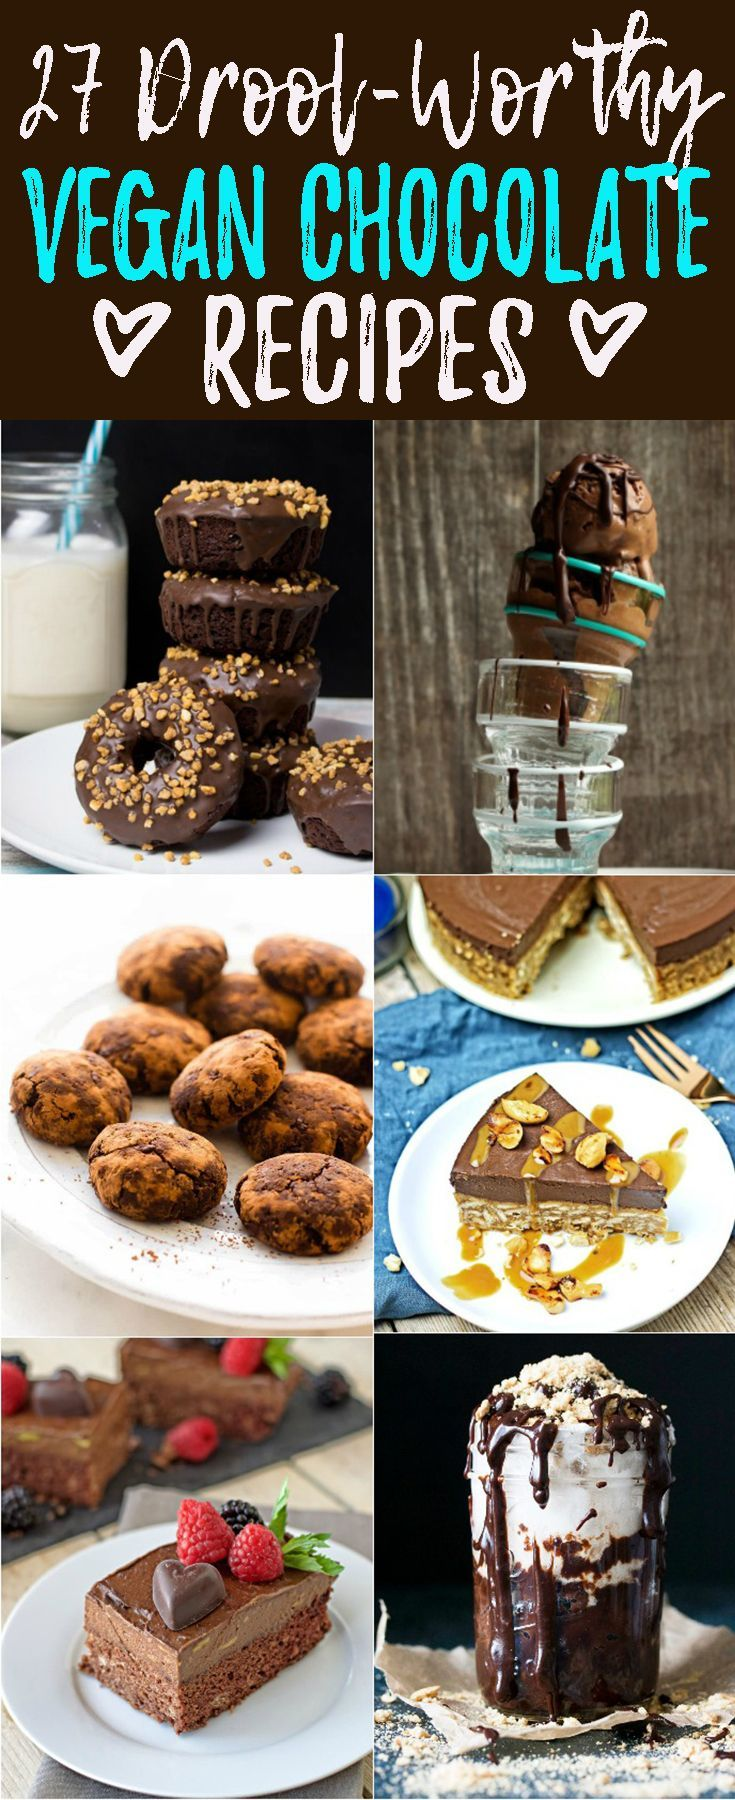 Don't miss out on these 27 vegan chocolate recipes that will definitely make you drool! Welcome to vegan chocolate heaven!